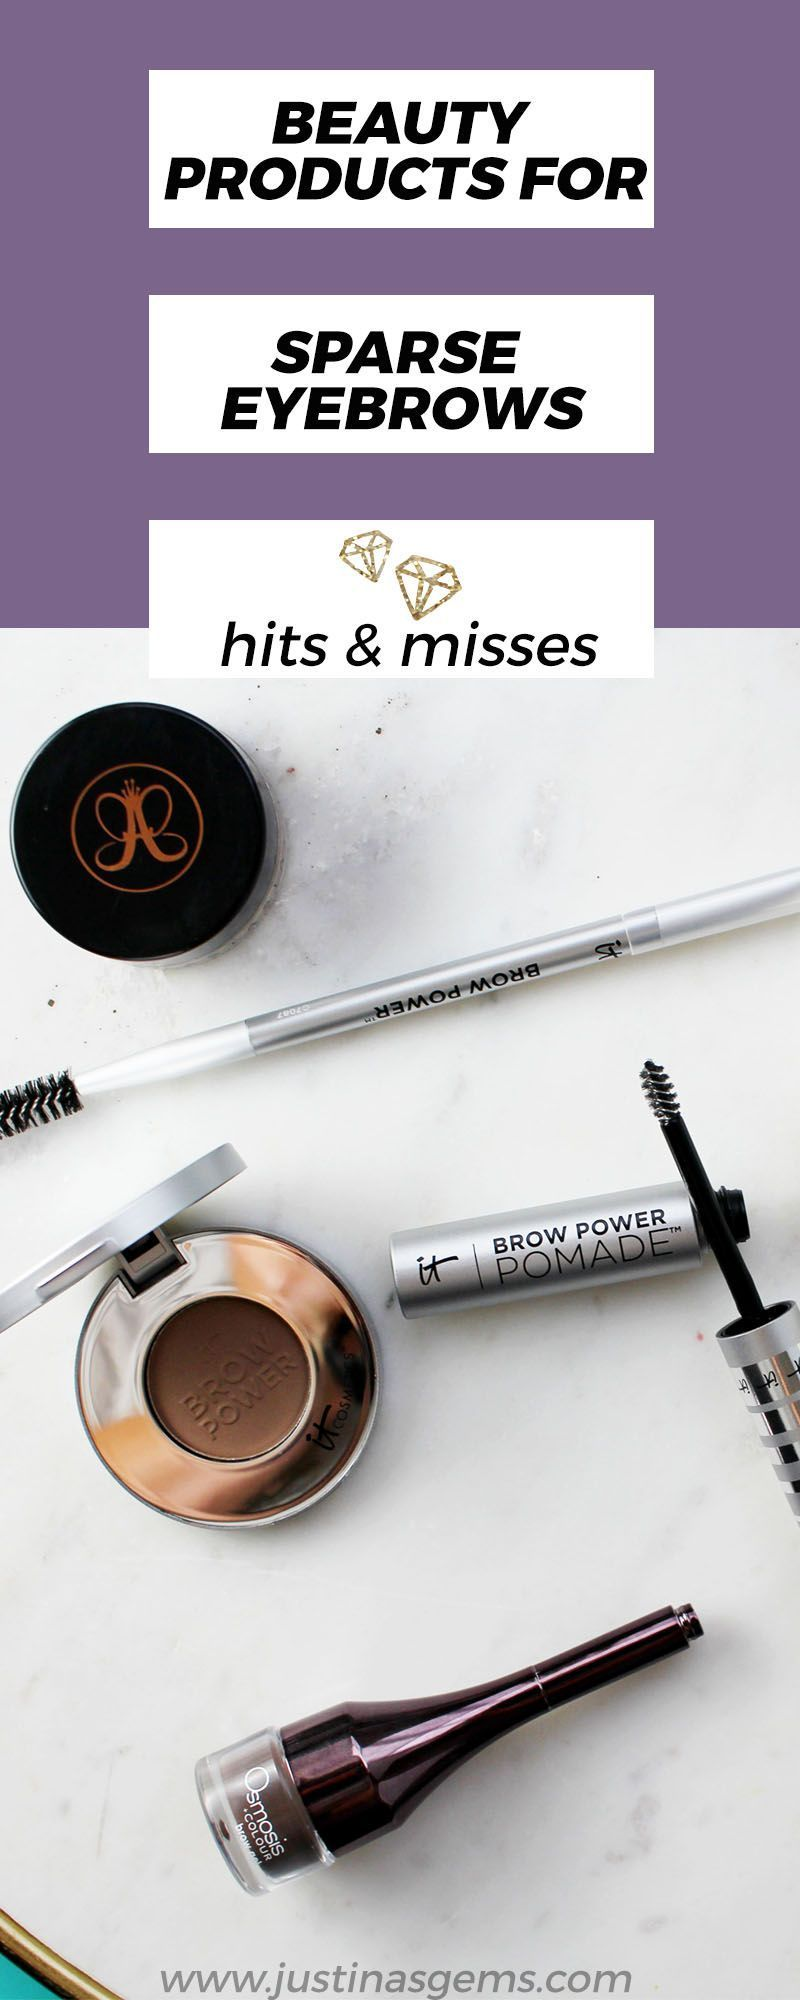 Beauty products for sparse eyebrows #DiyBeautyProducts # ...